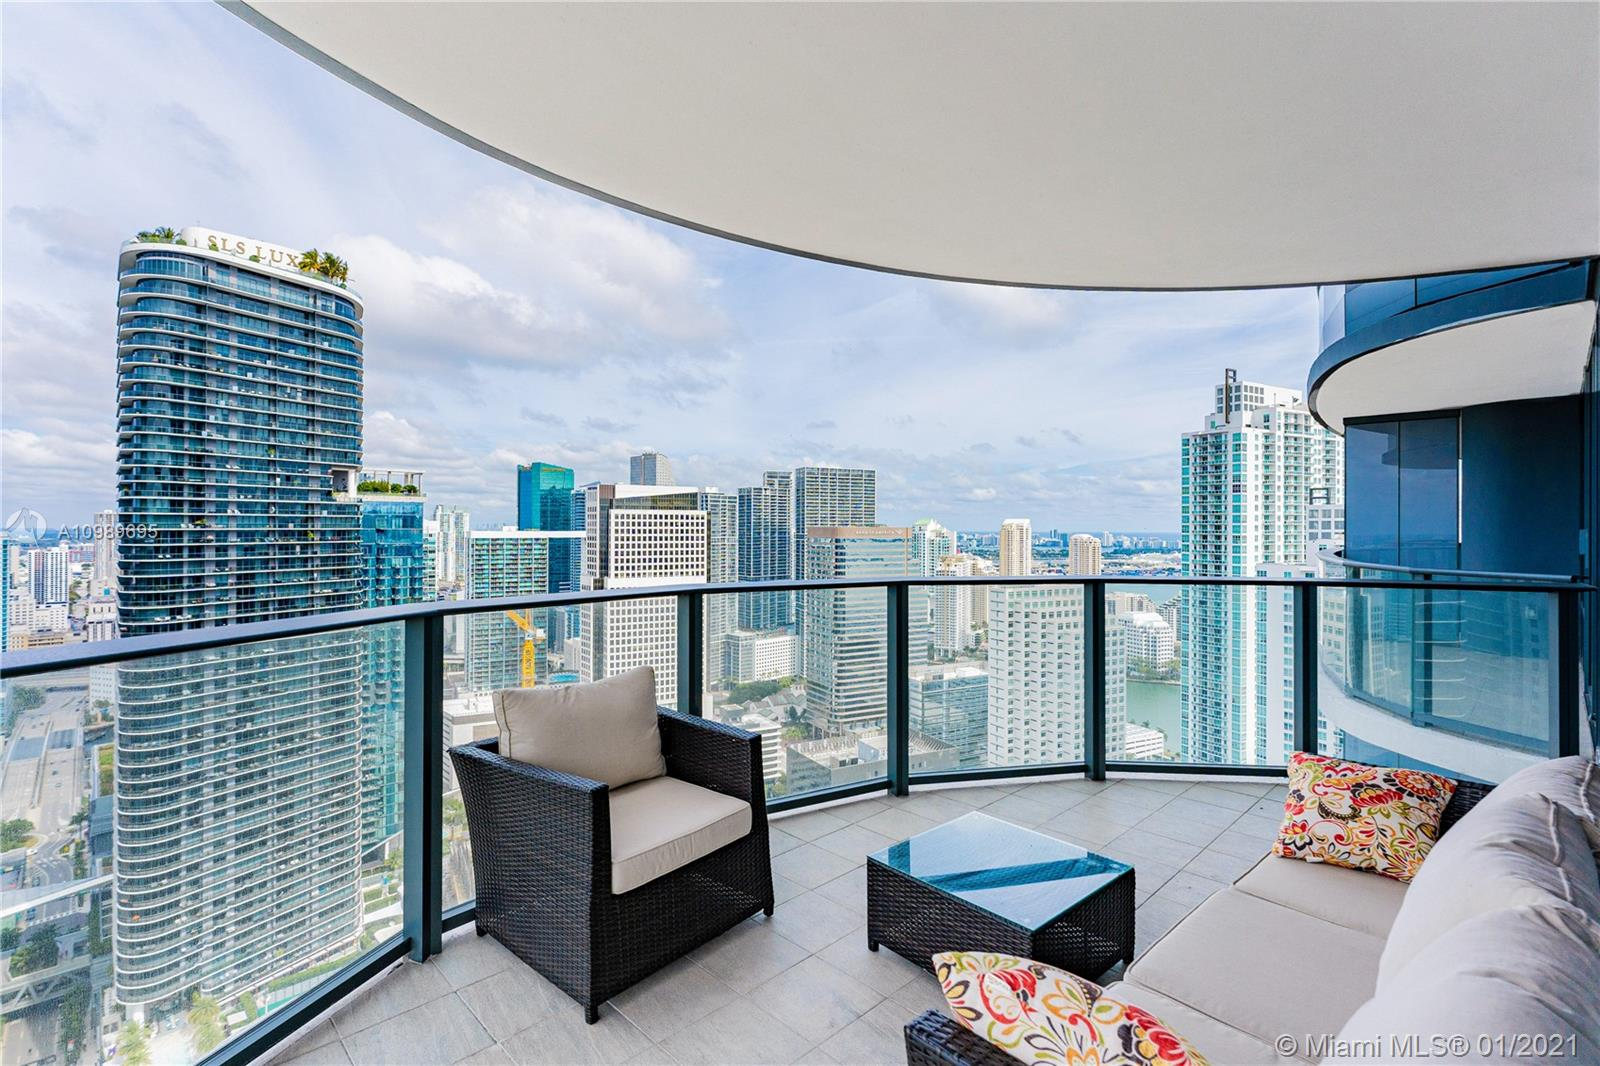 Awe-Inspiring Views w/Smooth, Smart & Sophisticated professional interior design.  This CORNER unit offers the finest, unparalleled, unobstructed N & W vistas. See sunrise over Miami Beach thru Sunsets.  It took 10mths to complete this showcase Designer unit with venetian plaster accent walls, open kitchen w/ Miele high-end appliances, Italian finishes, masterpieces from Ugo Colombo, upgraded doors, smart LED lighting system, remote control blinds, add'l DEN/OFFICE,